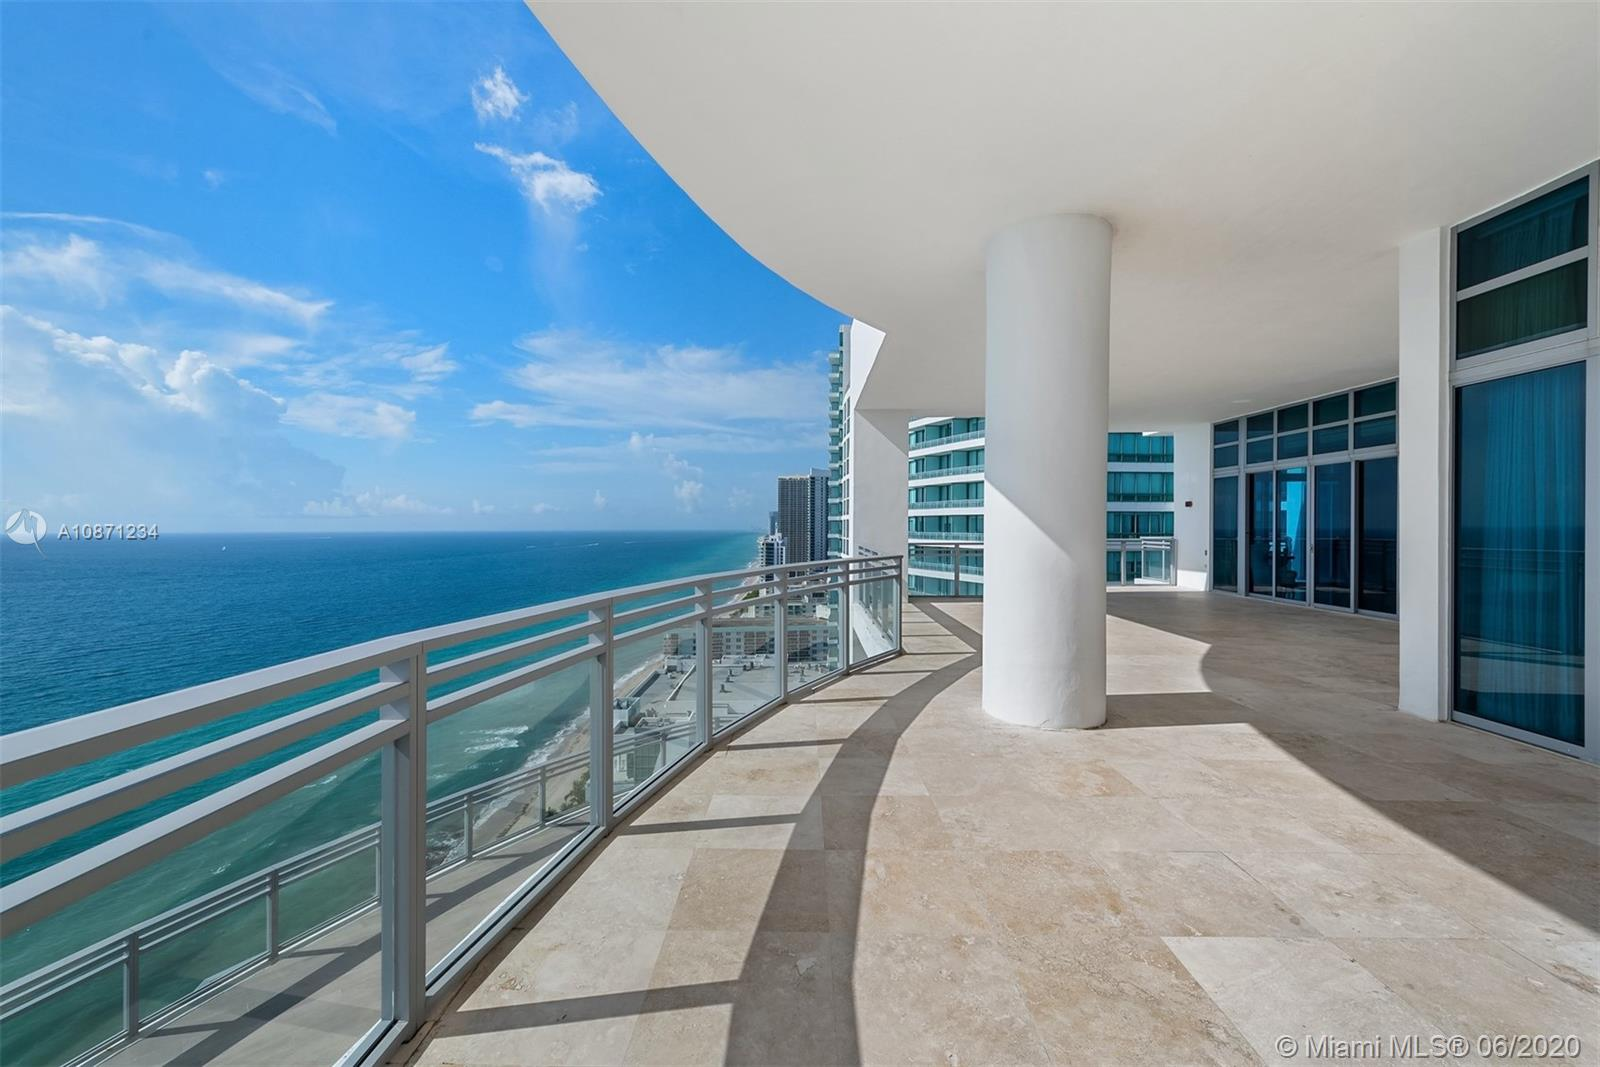 365 degree views, impressive terrace space, and an entire Penthouse floor. This unit features 7,861 SF and an additional 5,700 SF of outdoor private terrace space. PH2901 offers a private elevator entry, custom lighting, millwork & built-ins with a spacious flow-thru layout w/extended living, family & dining areas w/amazing views of downtown and direct ocean views. 6 bed with bathrooms in suite, 8.5 total bath. Private East facing terrace w direct ocean views that wrap around to the North facing downtown.  Expansive West facing terrace wraps around to the South with views of the sunsets, city skyline and beaches. Residents may enjoy the Diplomat Resort 6 restaurants, state-of-the-art Spa and Fitness Center, and other hotel services.